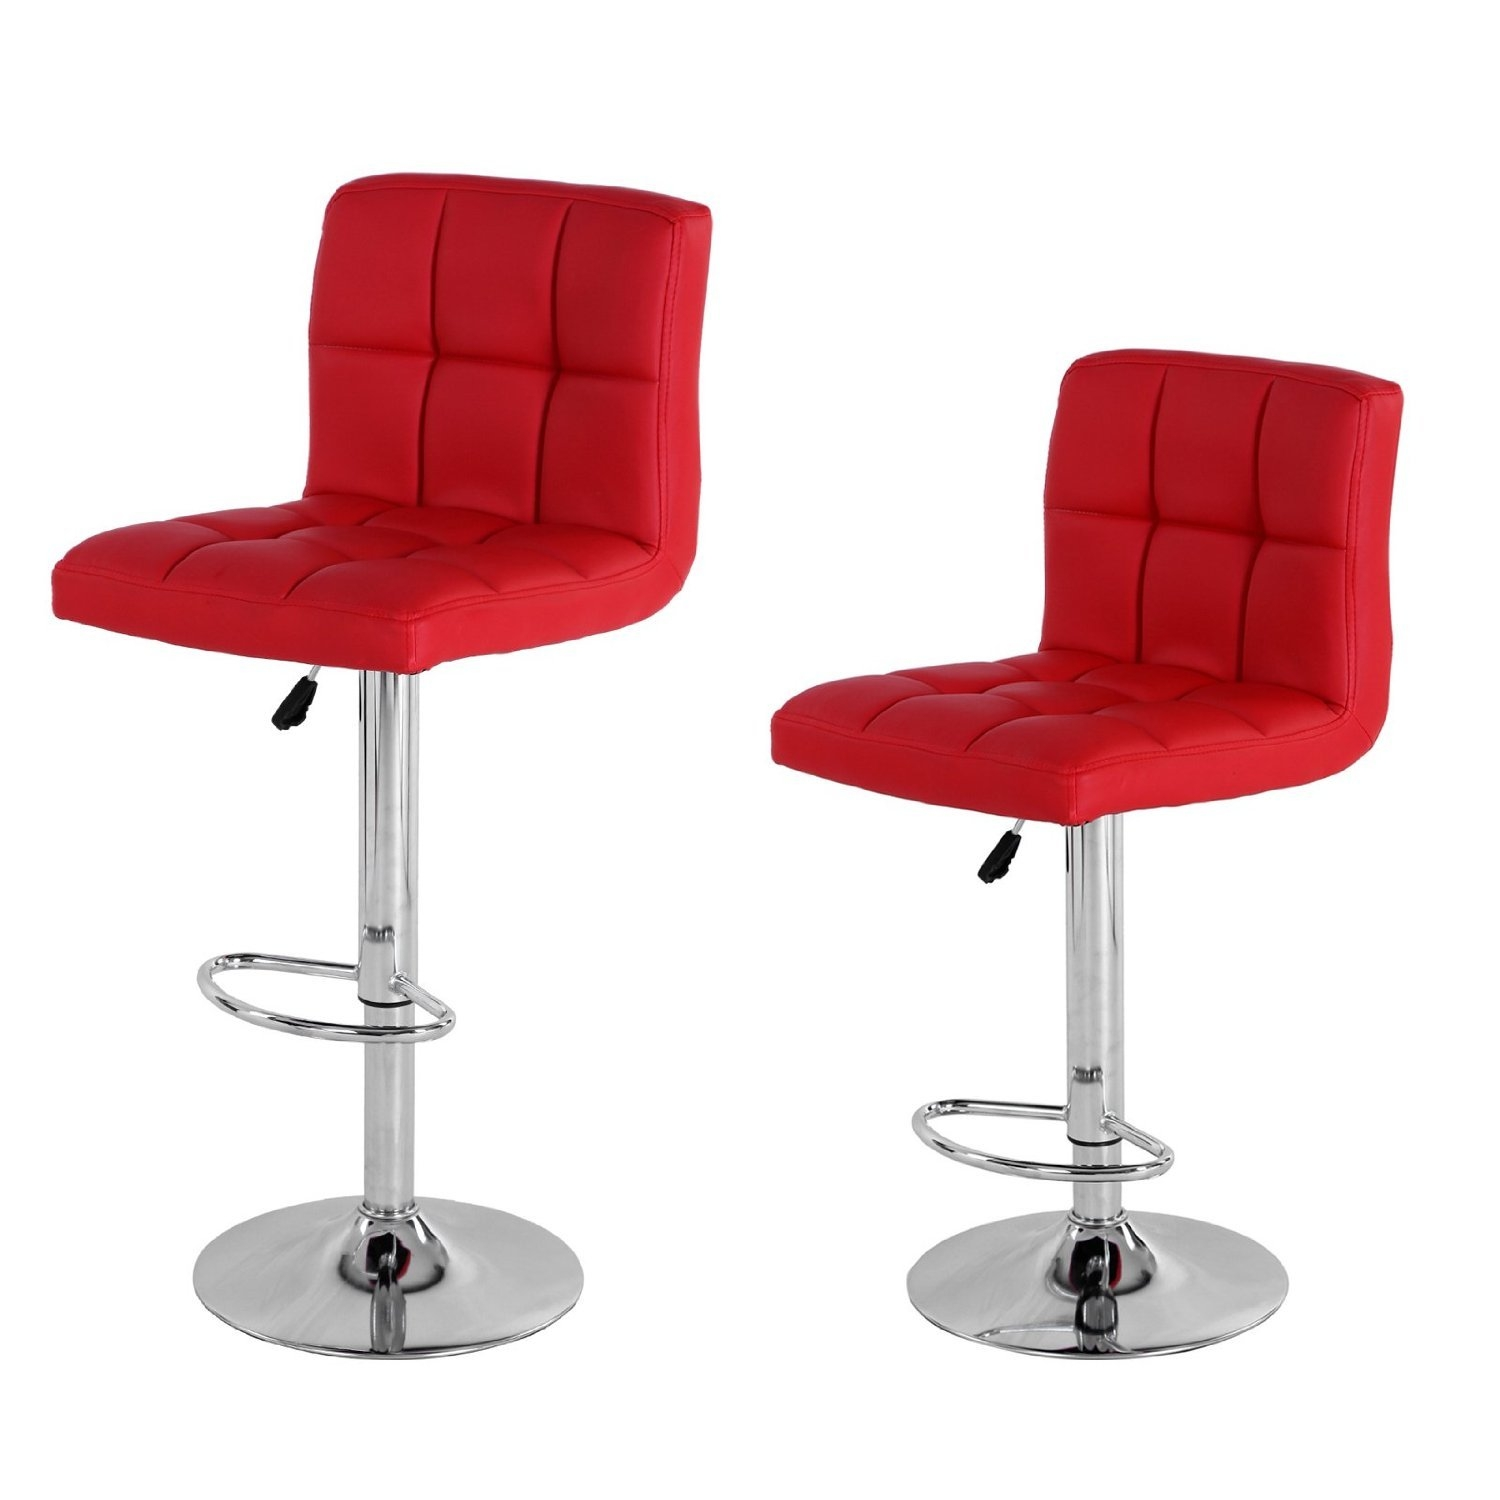 2 X PU Leather Hydraulic Lift Adjustable Counter Bar Stool Dining Chair Red   Pack Of